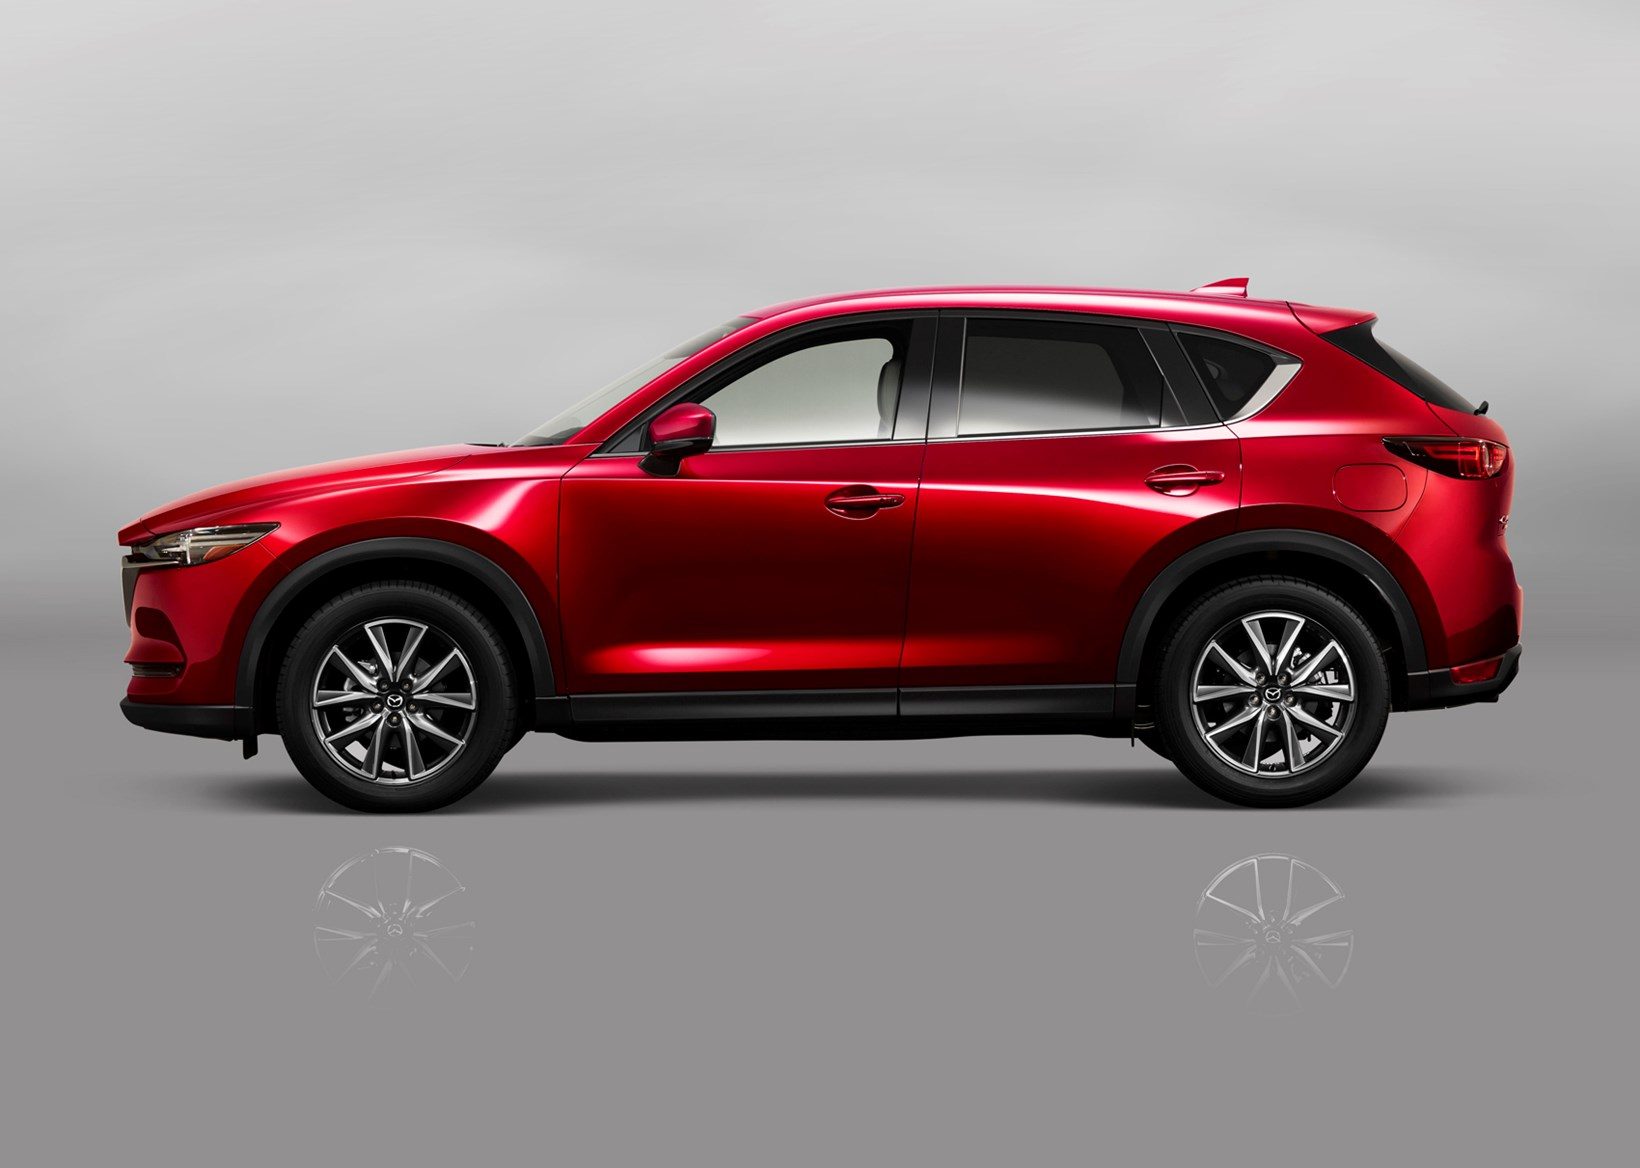 mazda cx 5 review summary parkers. Black Bedroom Furniture Sets. Home Design Ideas